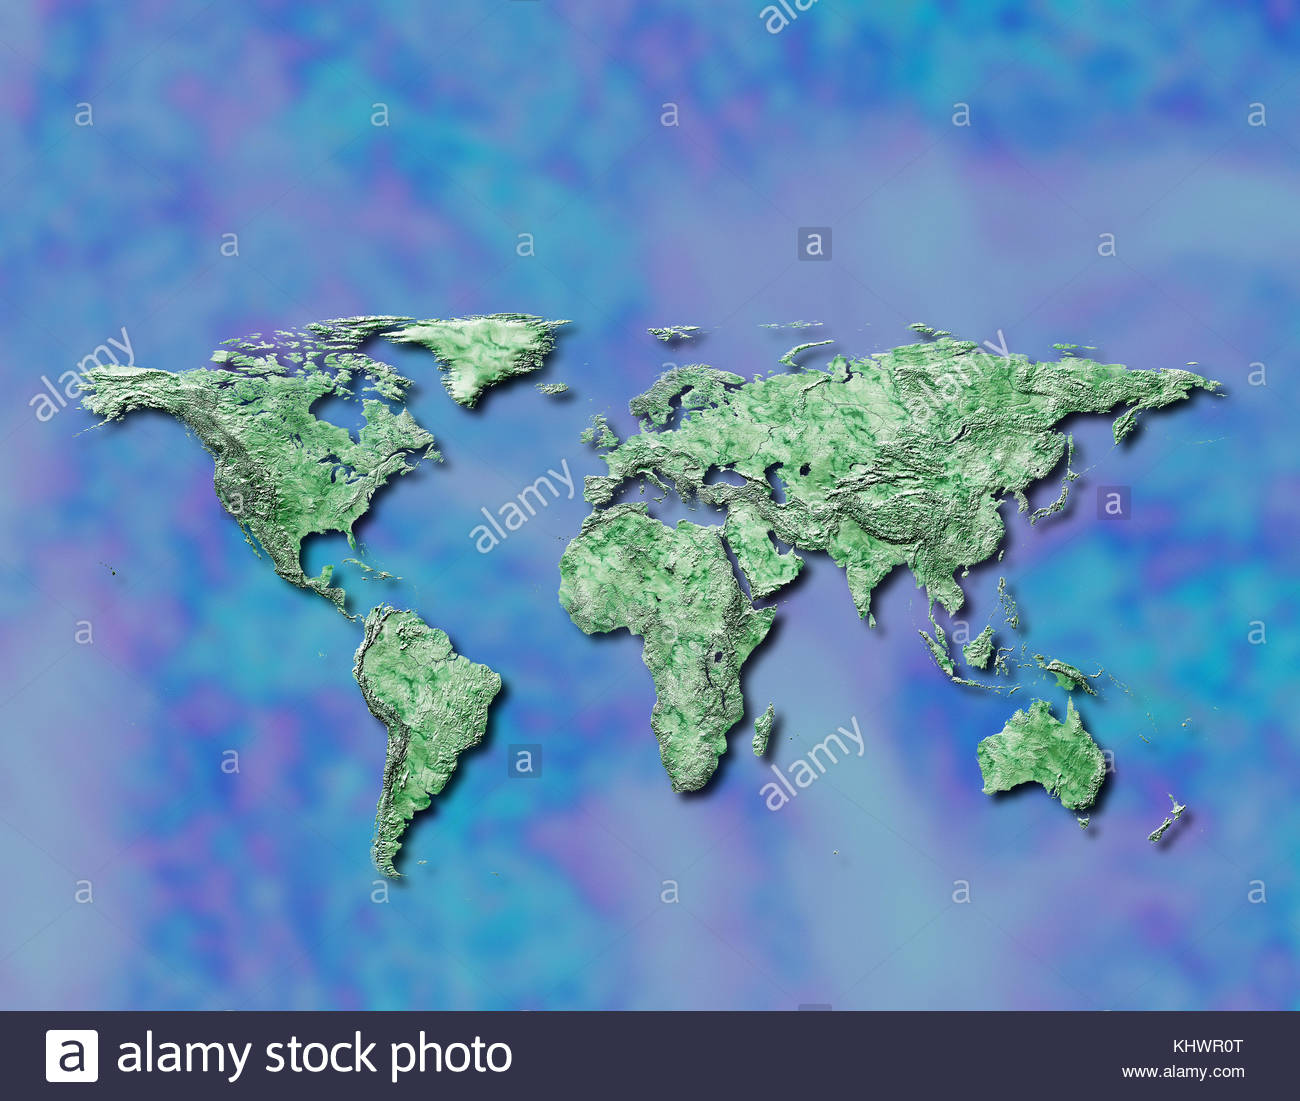 World map global globalization maps cartography worldwide geography continent international, earth - Stock Image